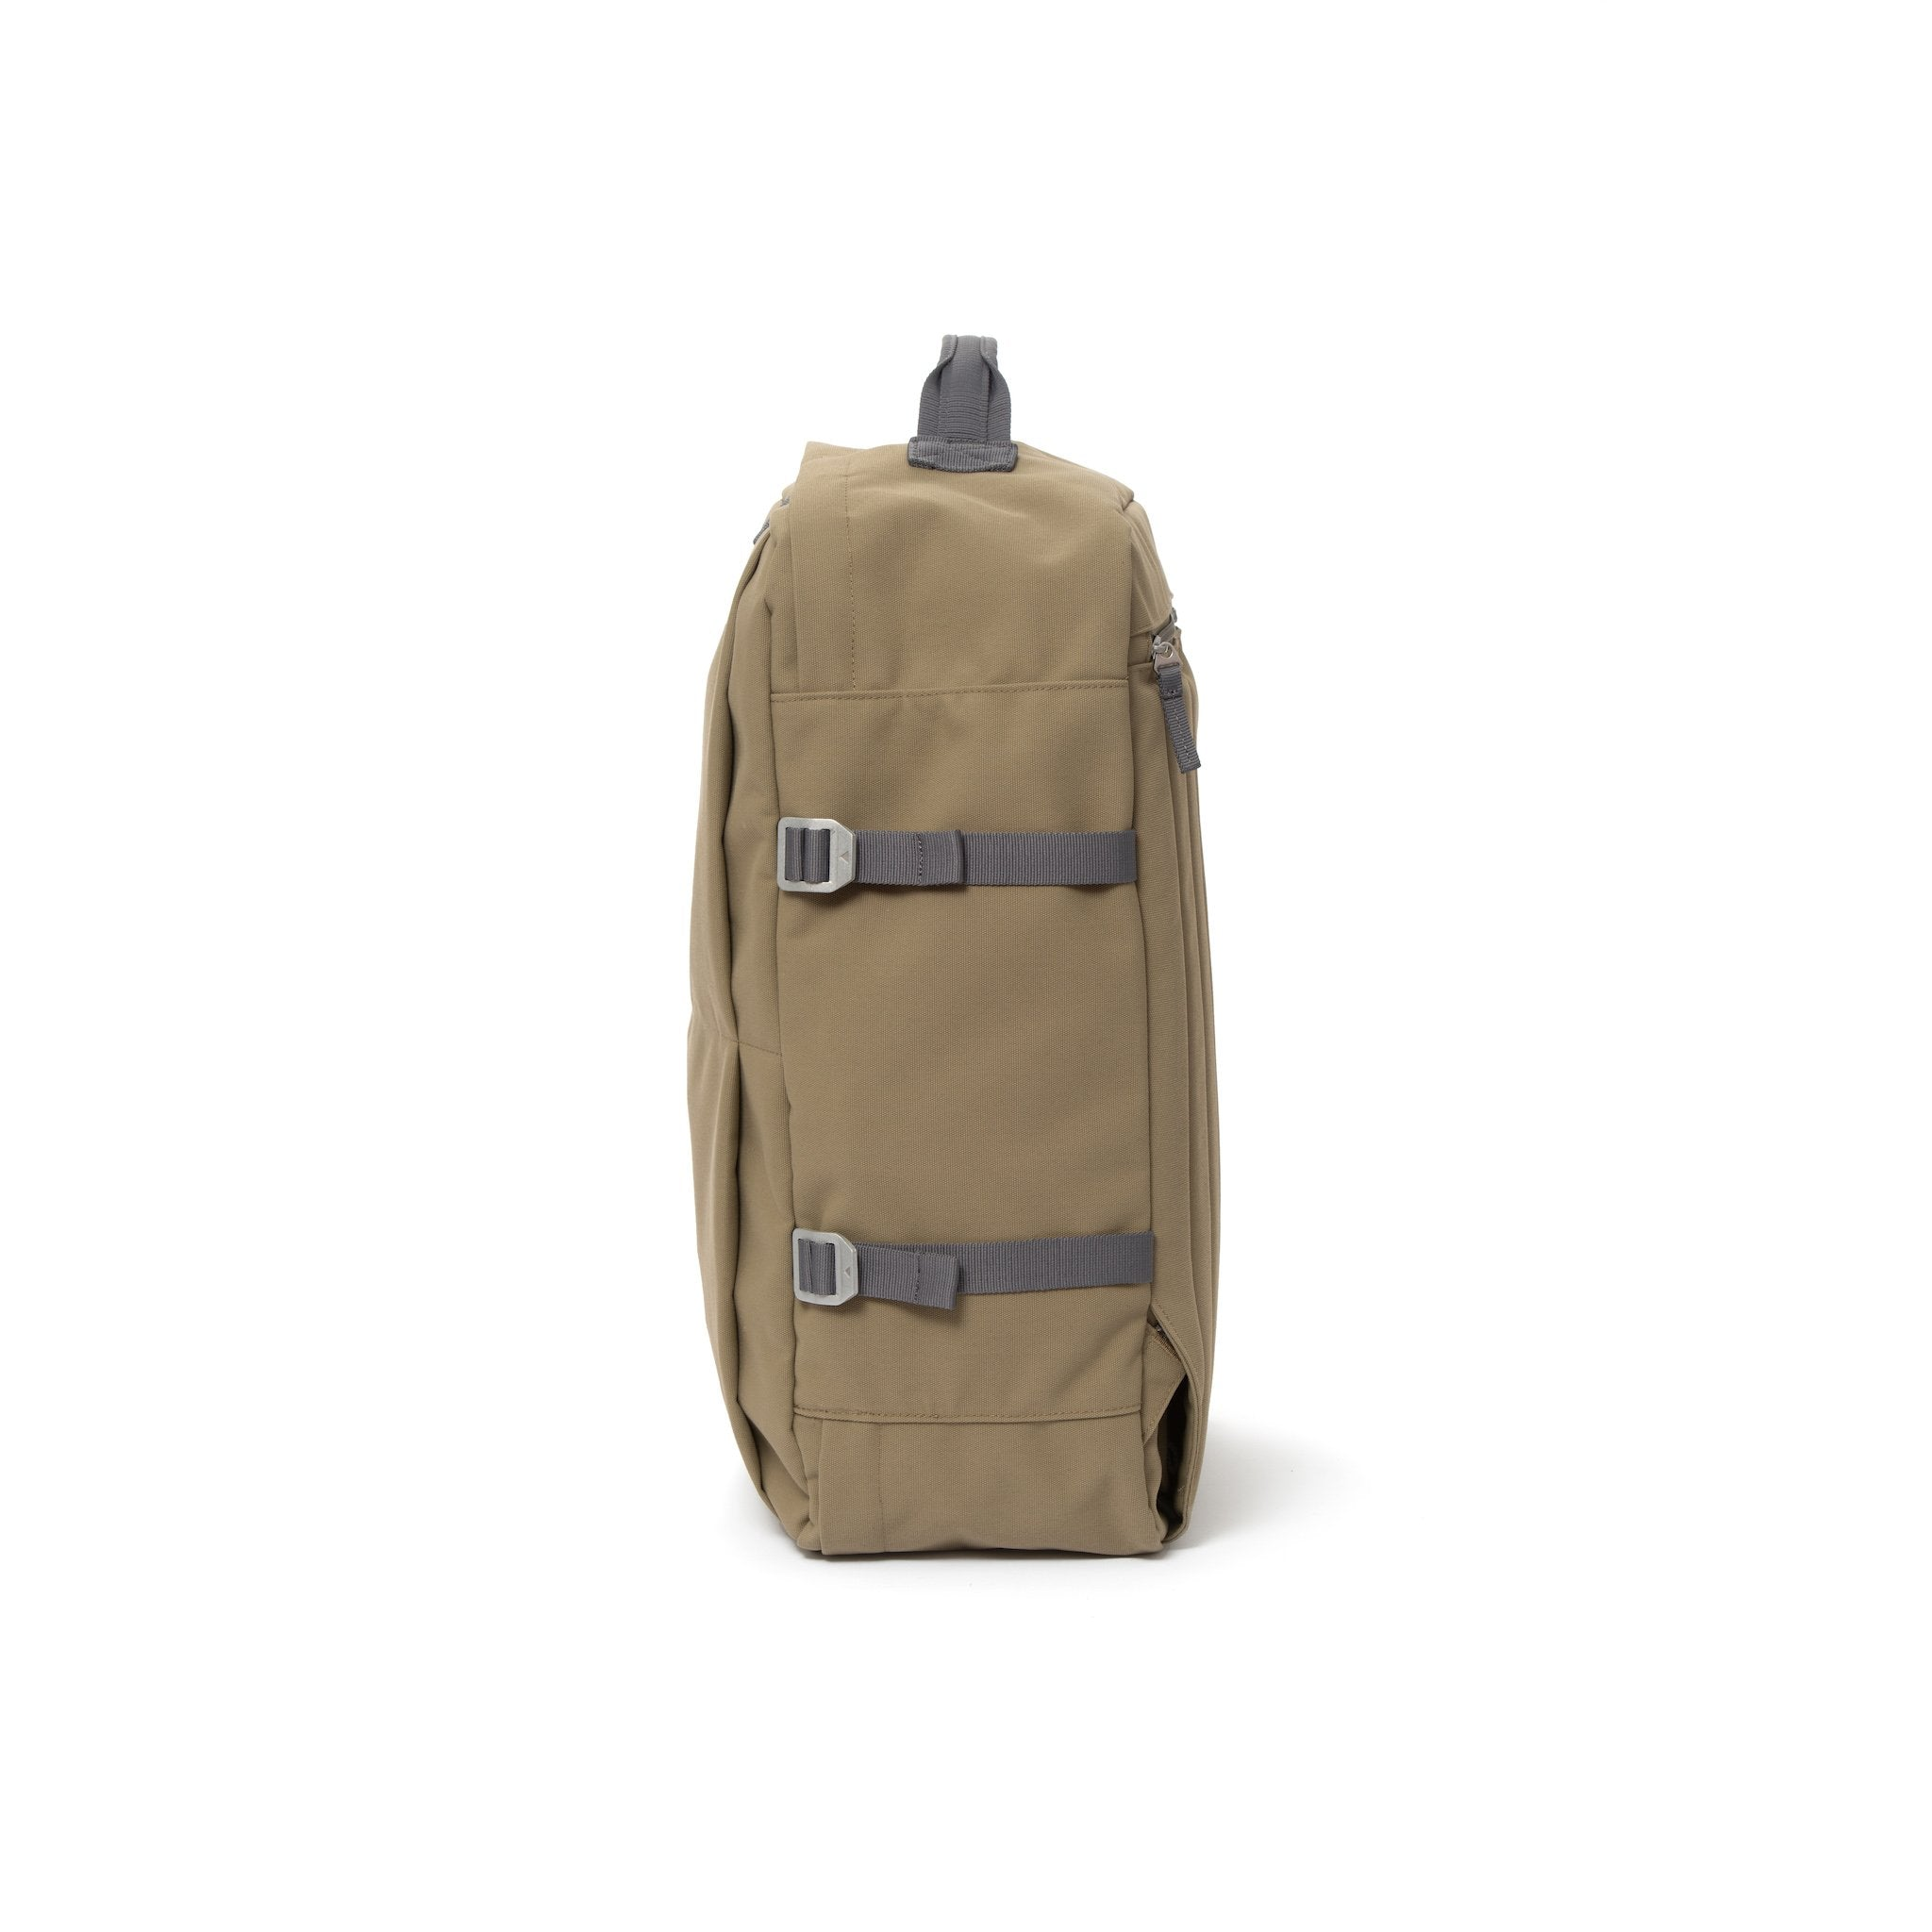 Khaki waterproof canvas travel backpack with compression side straps.